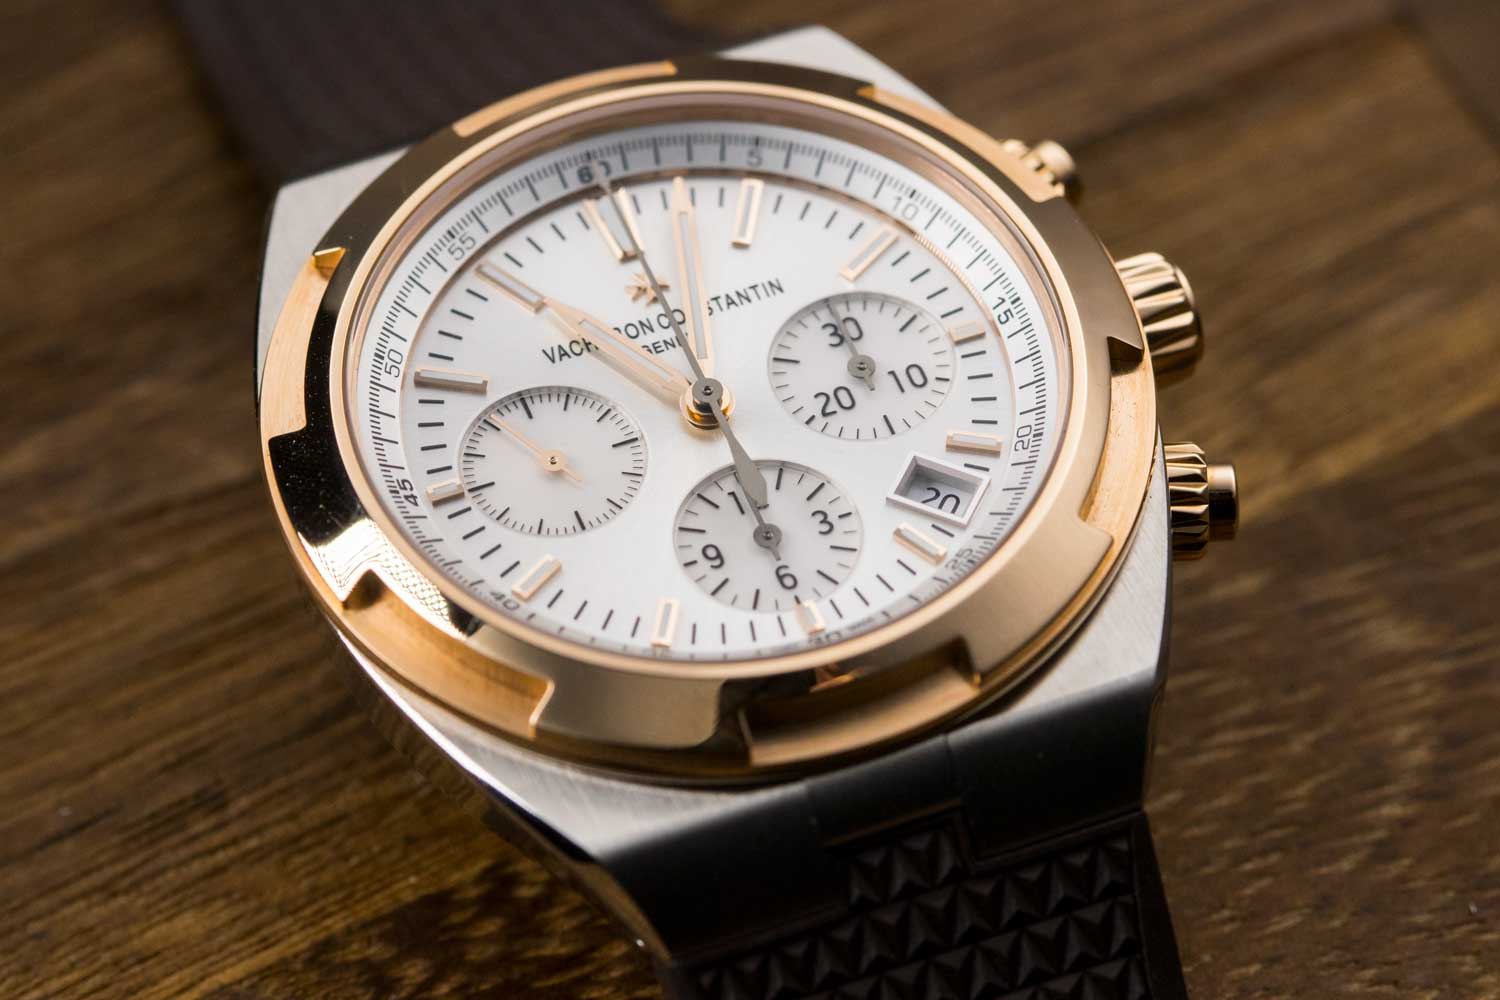 Vacheron Constantin's two-tone Overseas Chronograph